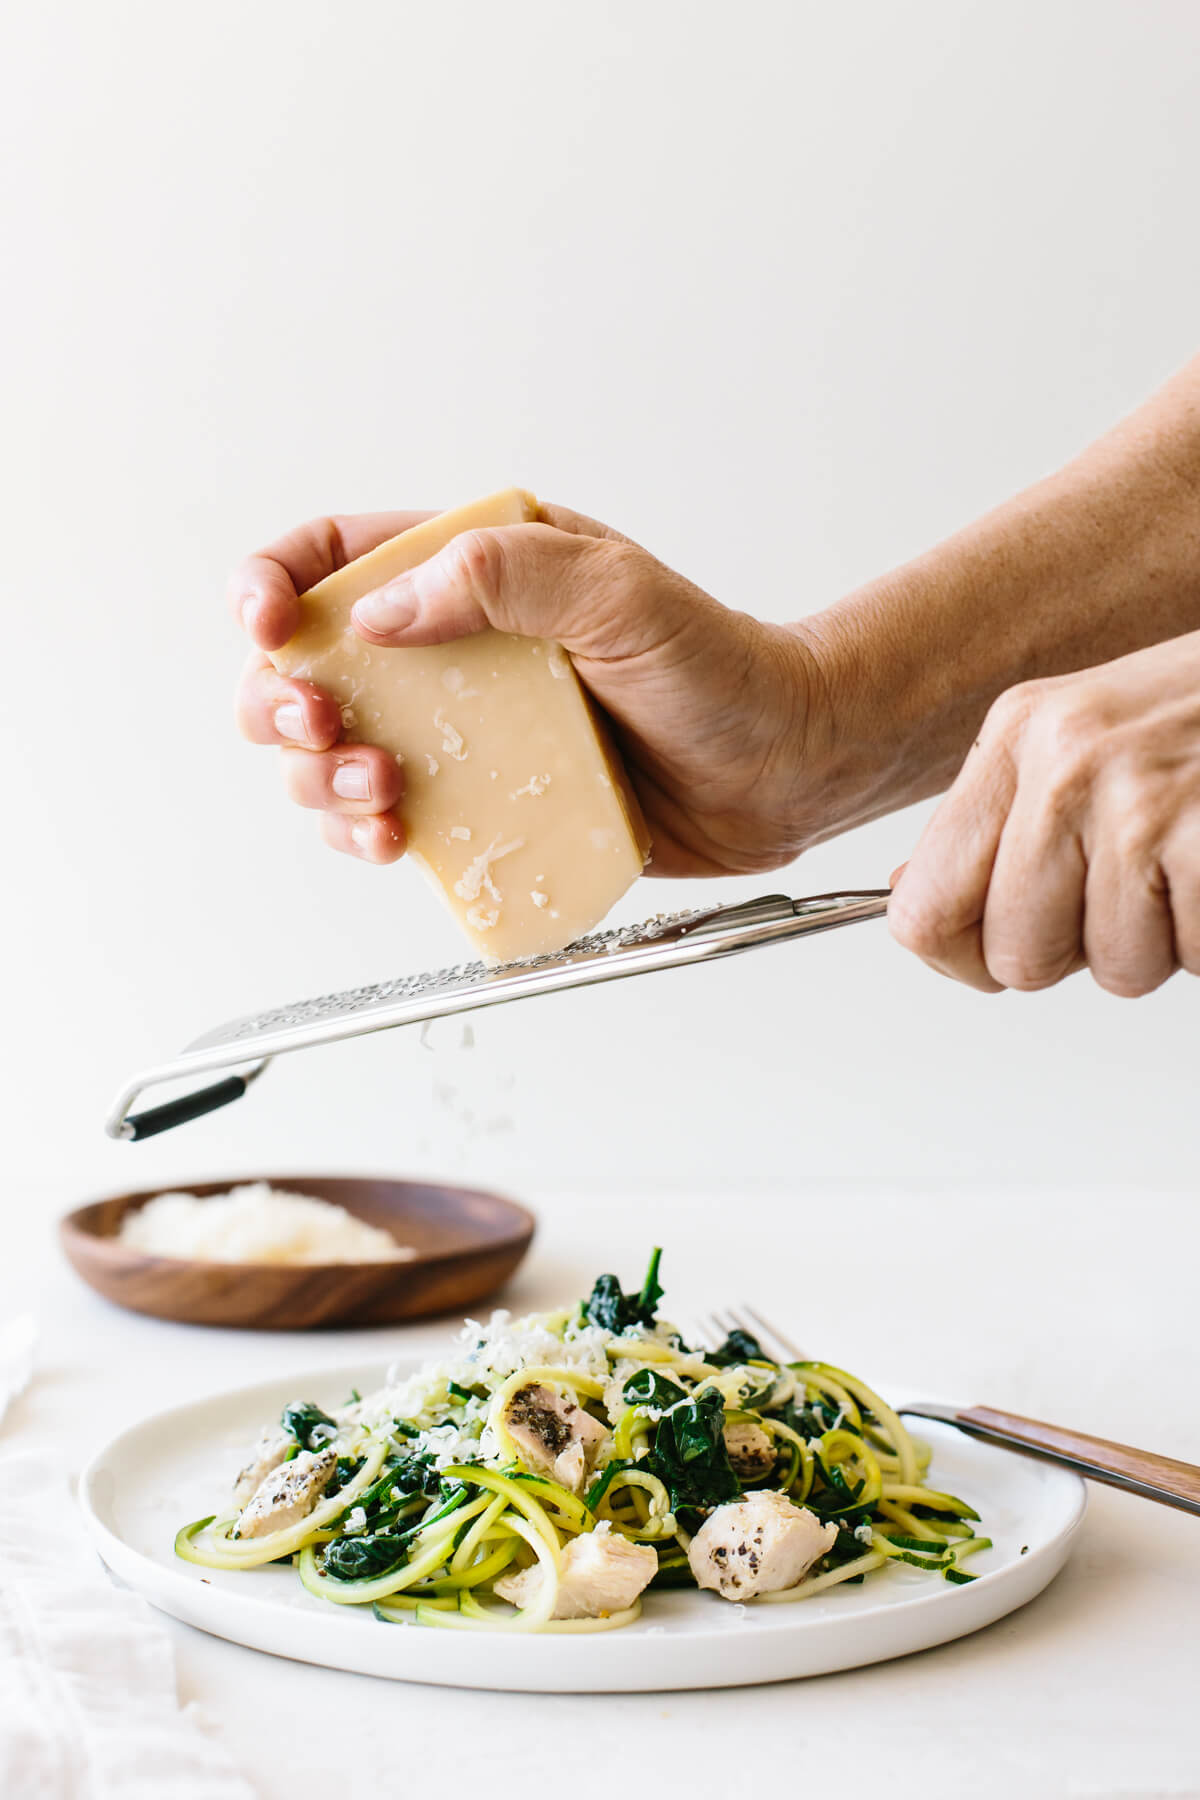 Grating fresh parmesan on a plate of zucchini noodles and chicken.